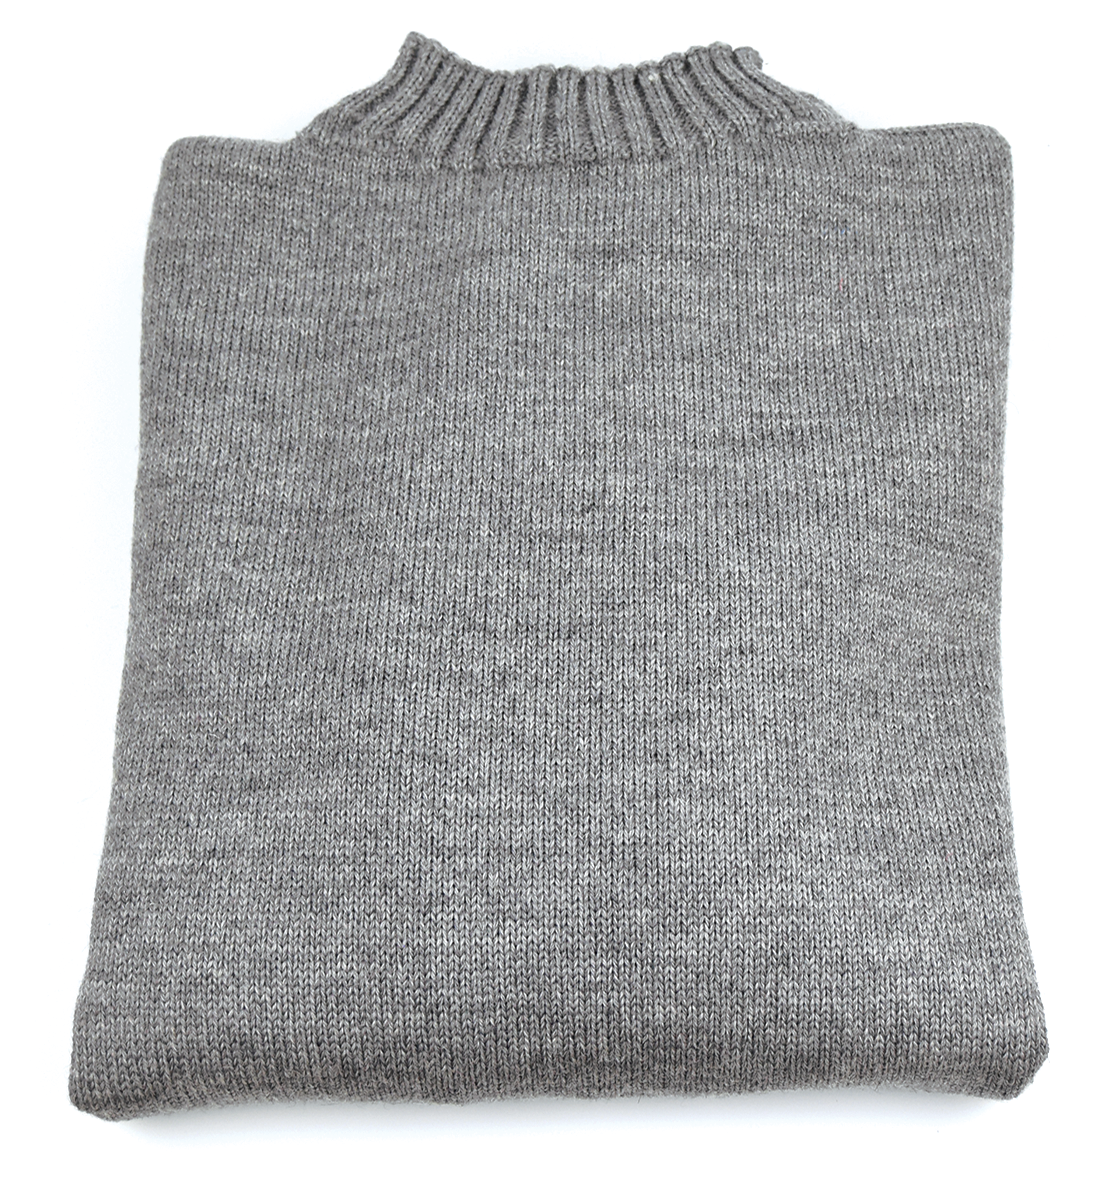 Traditional Wool Guernsey - Mid Grey